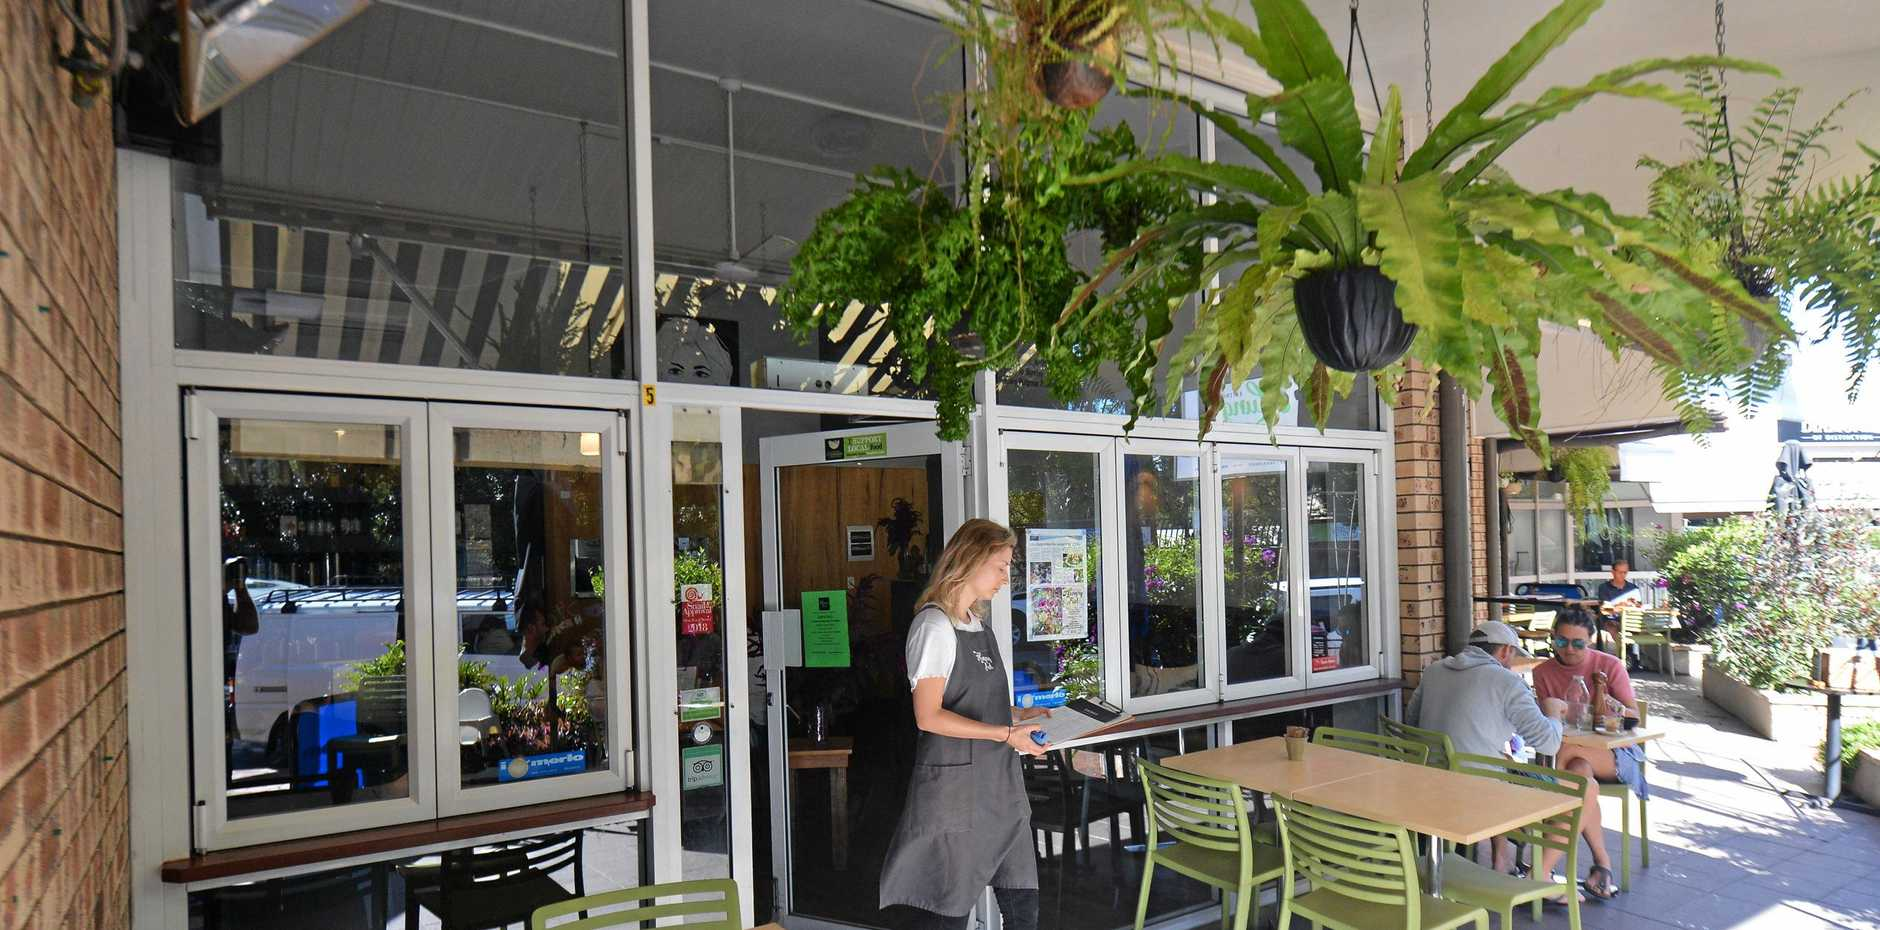 Resaurant awards review on Hungry Feel, Buderim.